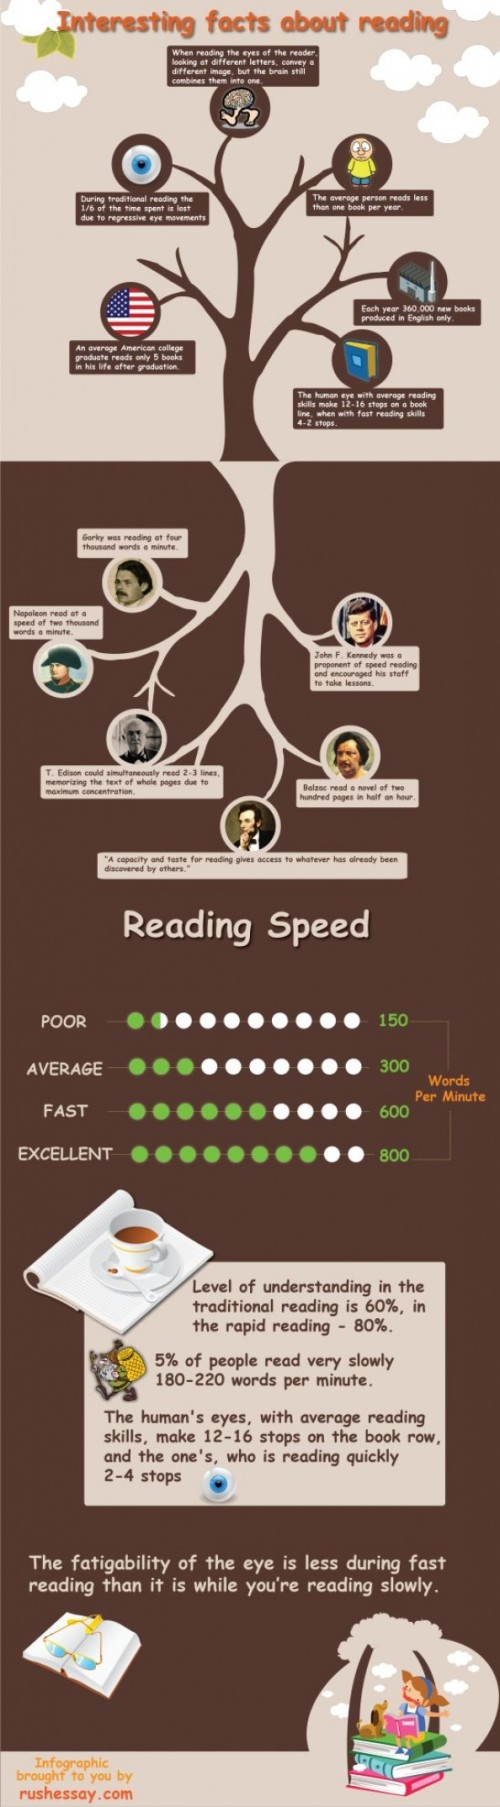 interesting-facts-about-reading_50290ee6a6406_w594